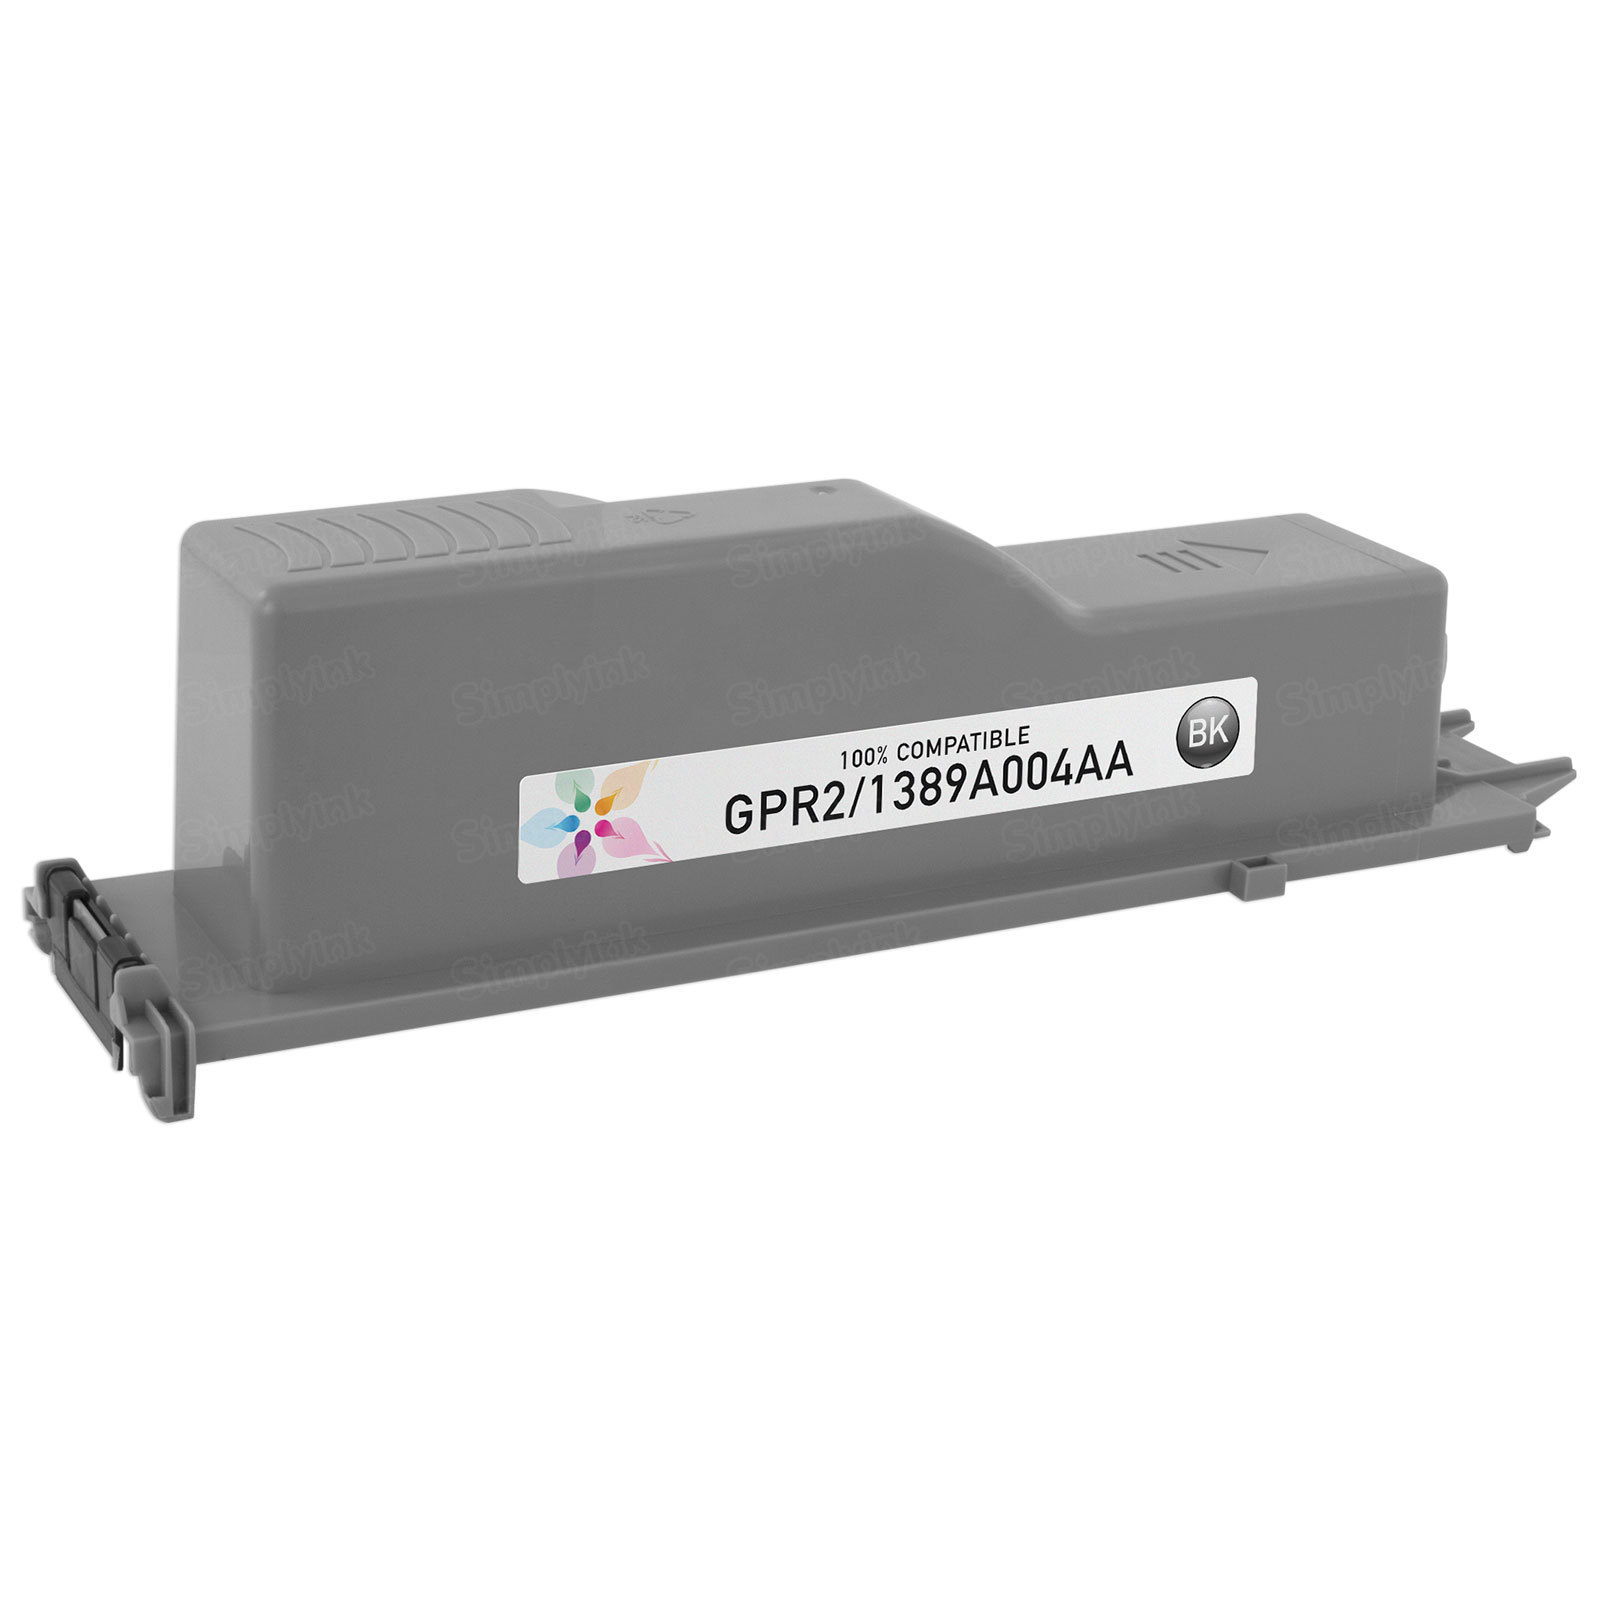 Canon Compatible GPR2 Black Toner Cartridge for the ImageRunner 330 & 400